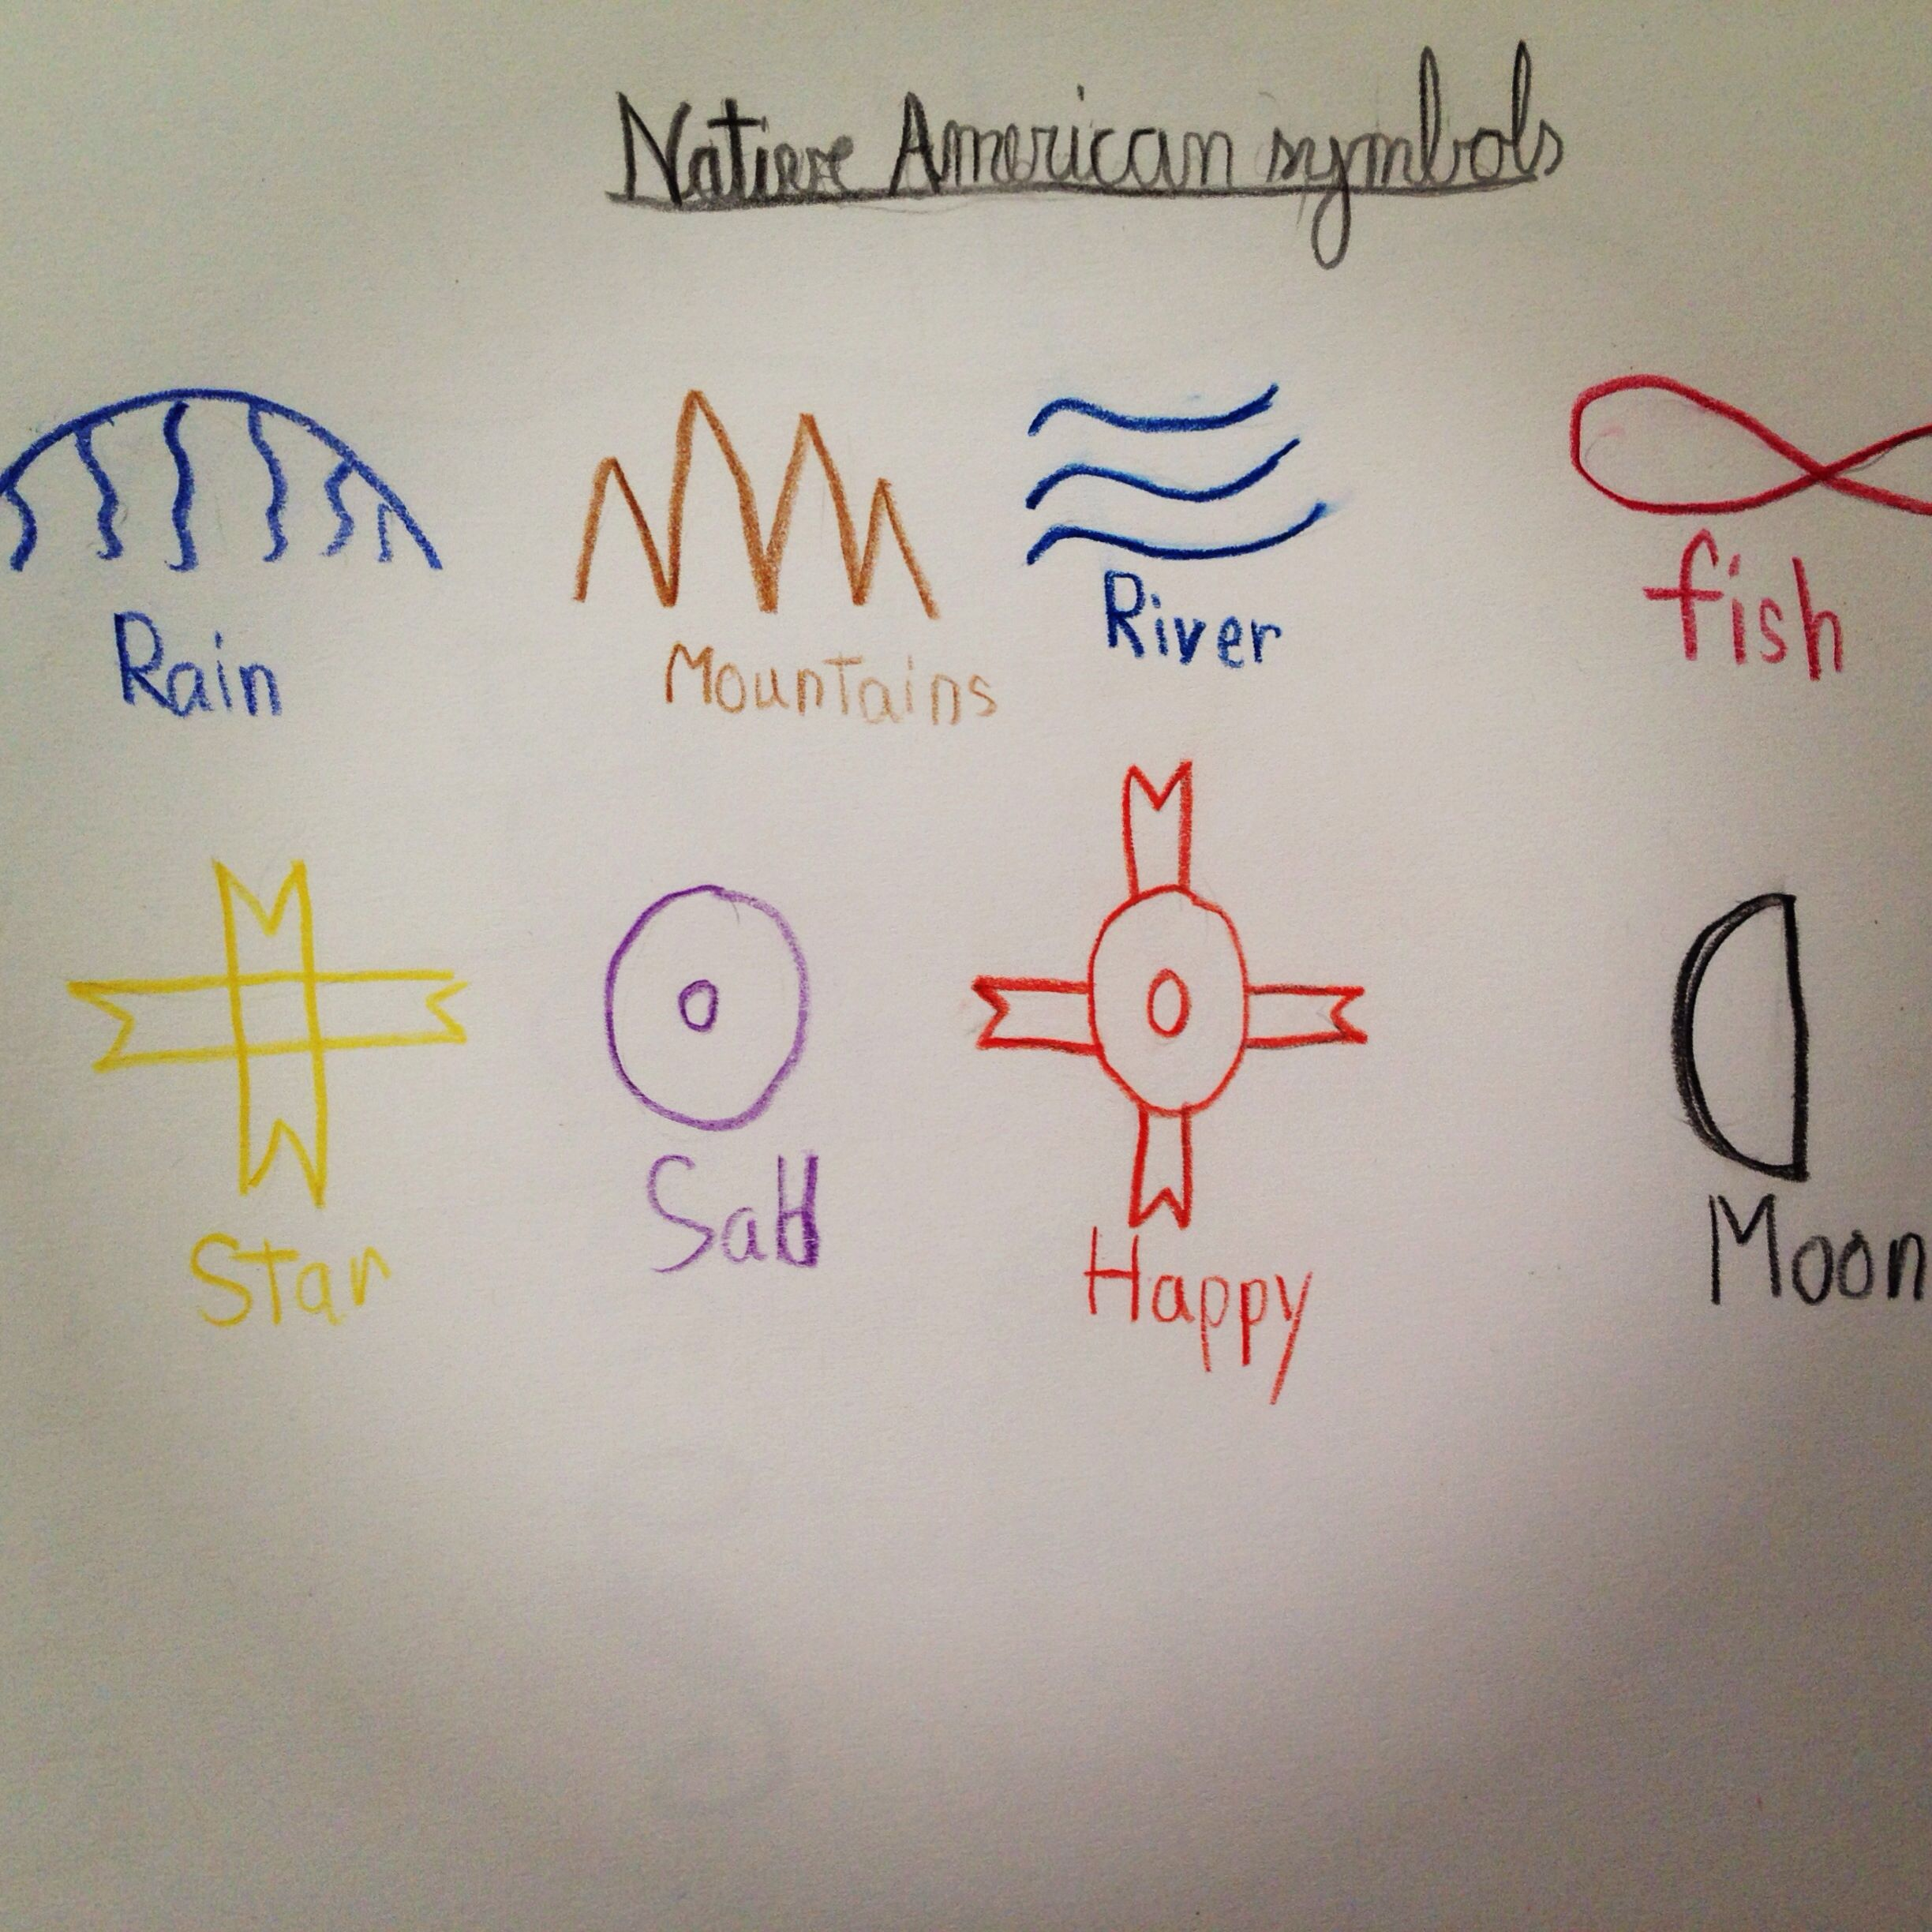 Native American Symbols From Earthschooling Curriculum